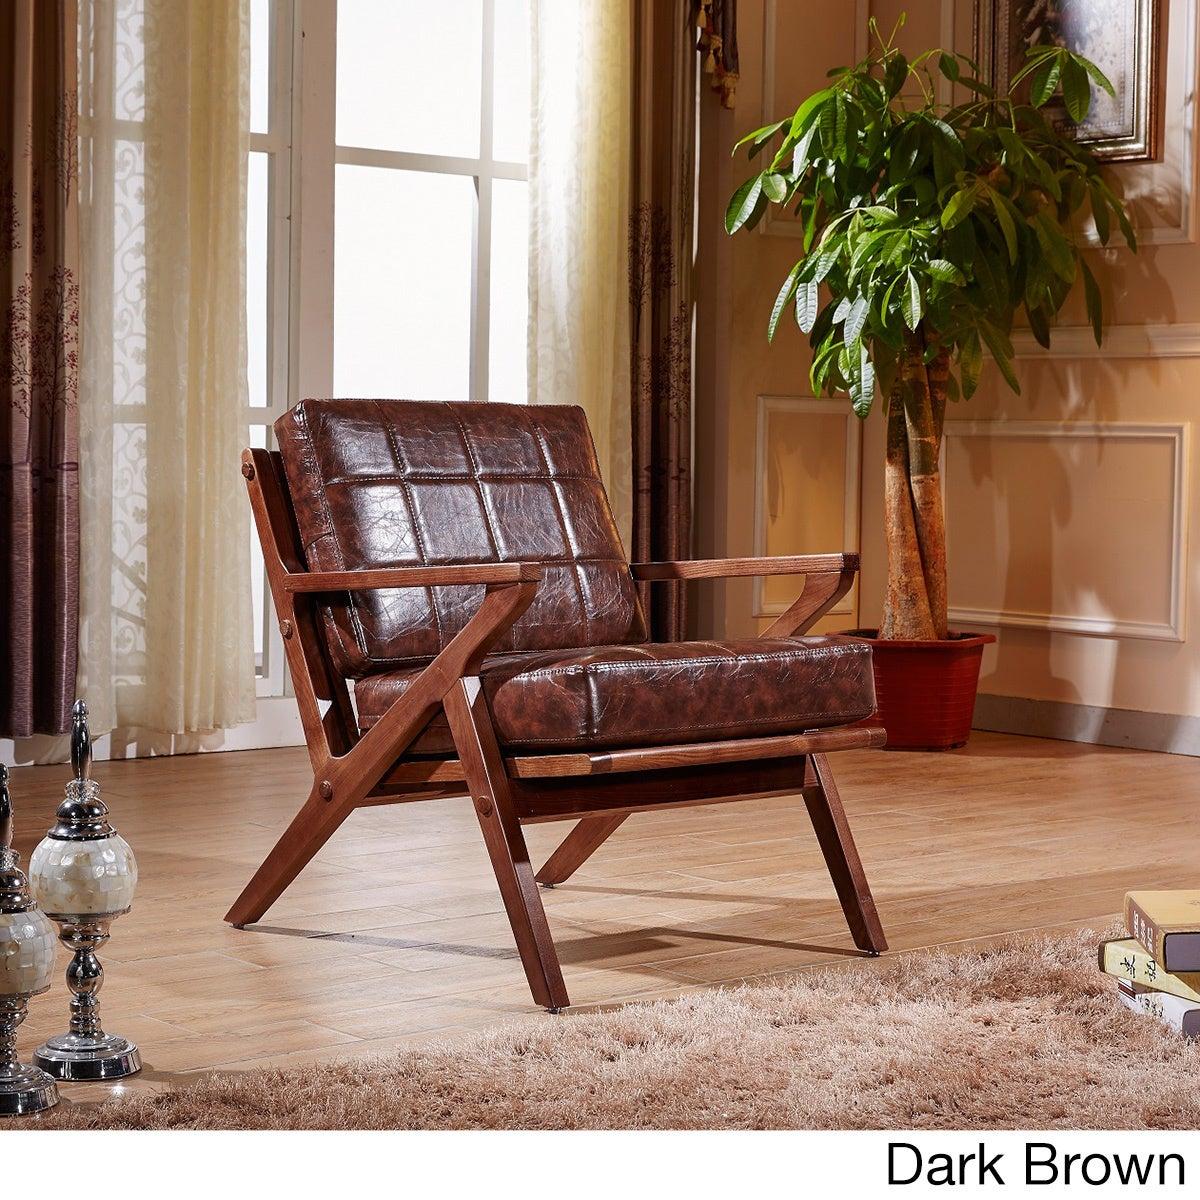 Merveilleux Shop Elegant Signature Designs Solid Wood Accent Club Arm Chair   On Sale    Free Shipping Today   Overstock.com   11324430